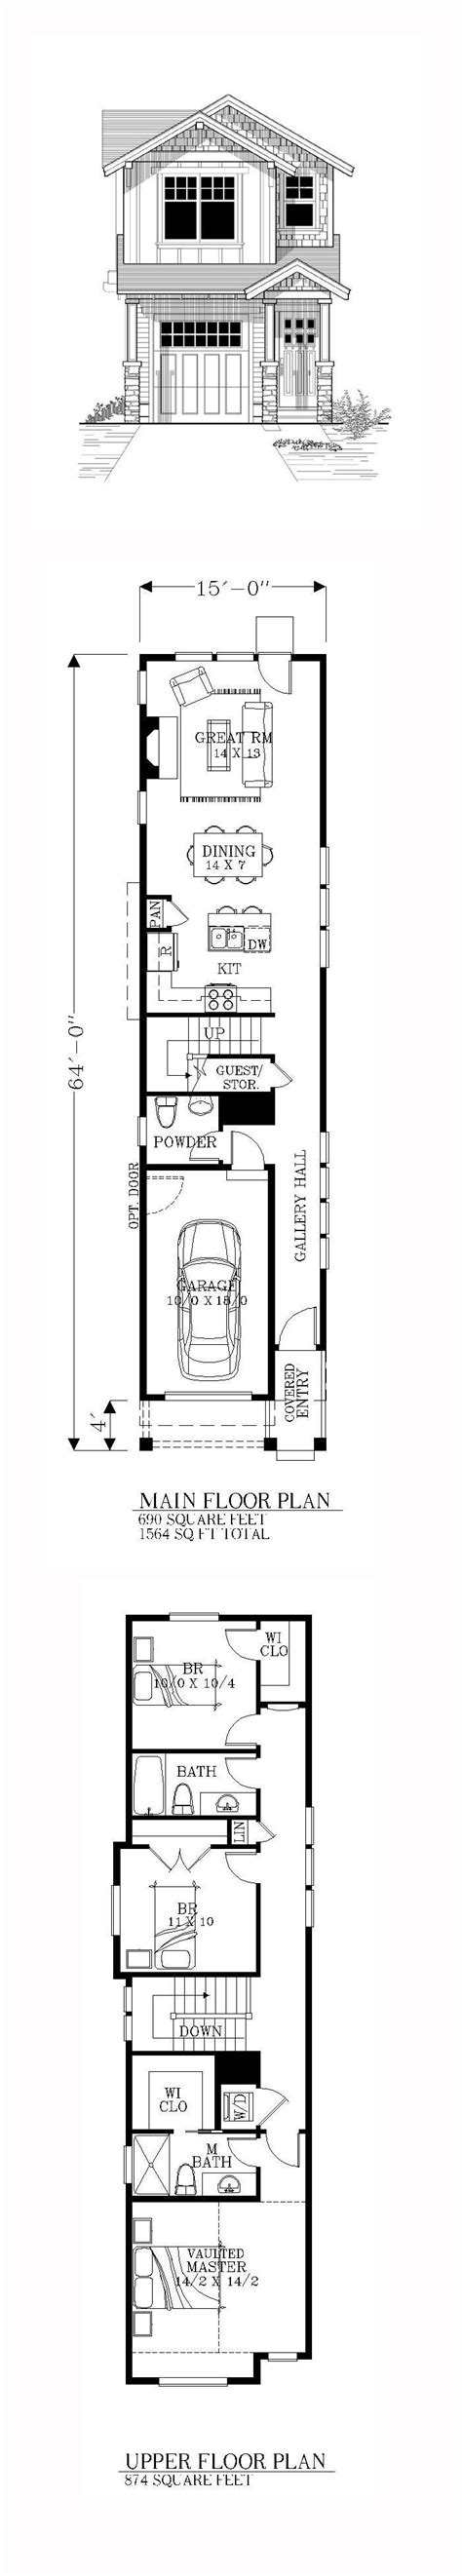 long narrow apartment floor plans micro house plans narrowotong floor skinnyow ranch long